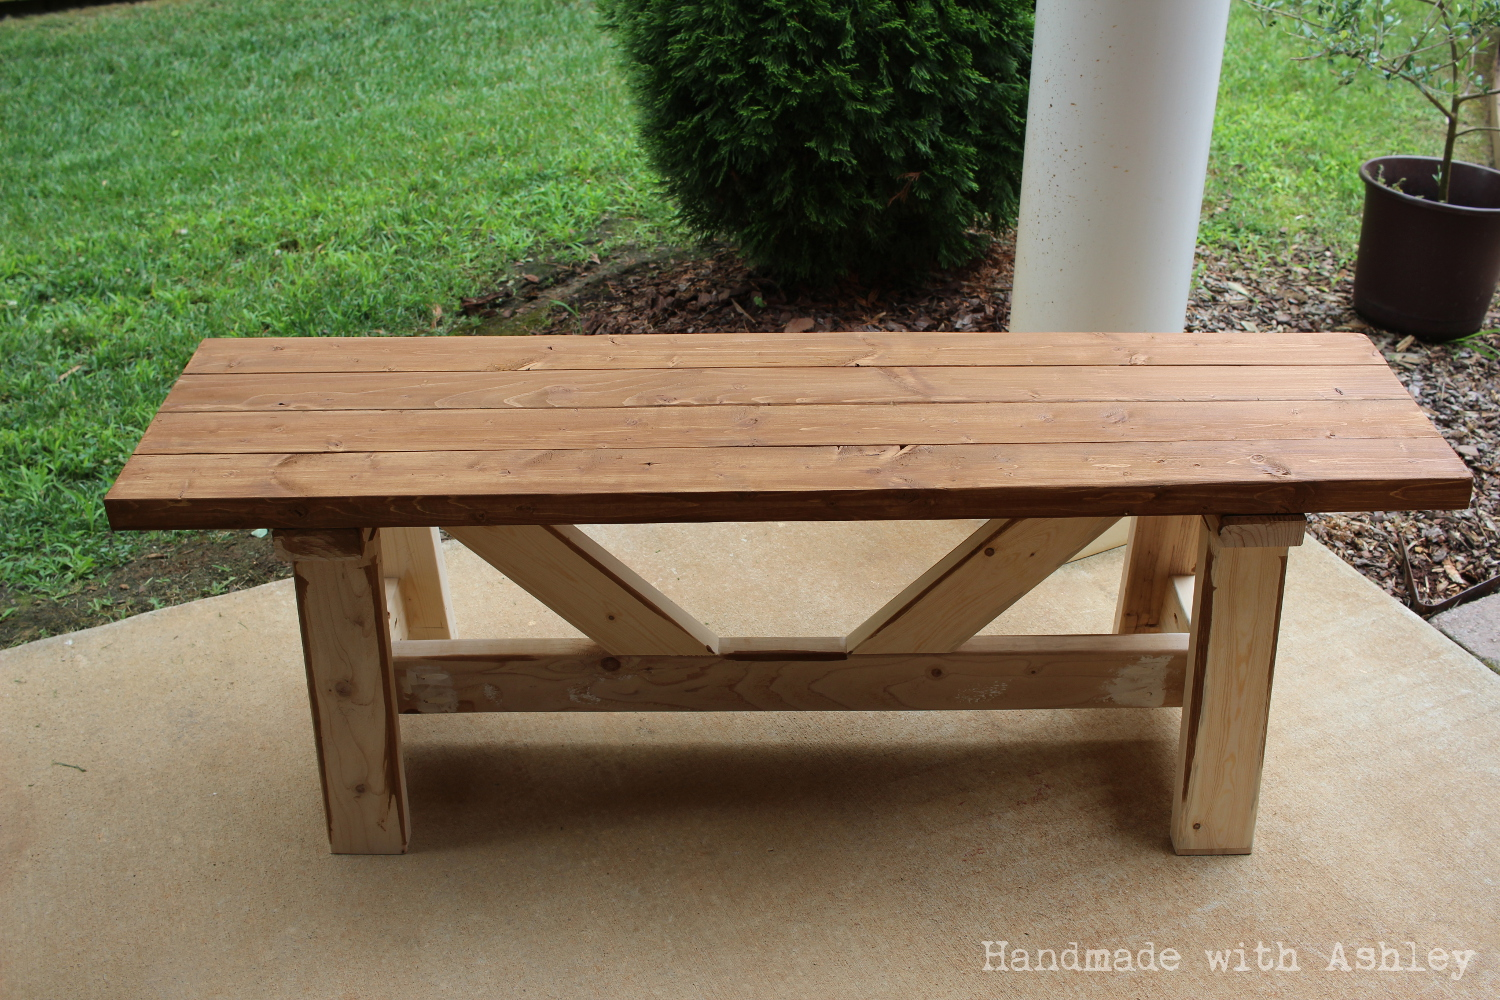 Stupendous Diy Providence Bench Plans By Ana White Handmade With Ashley Ncnpc Chair Design For Home Ncnpcorg